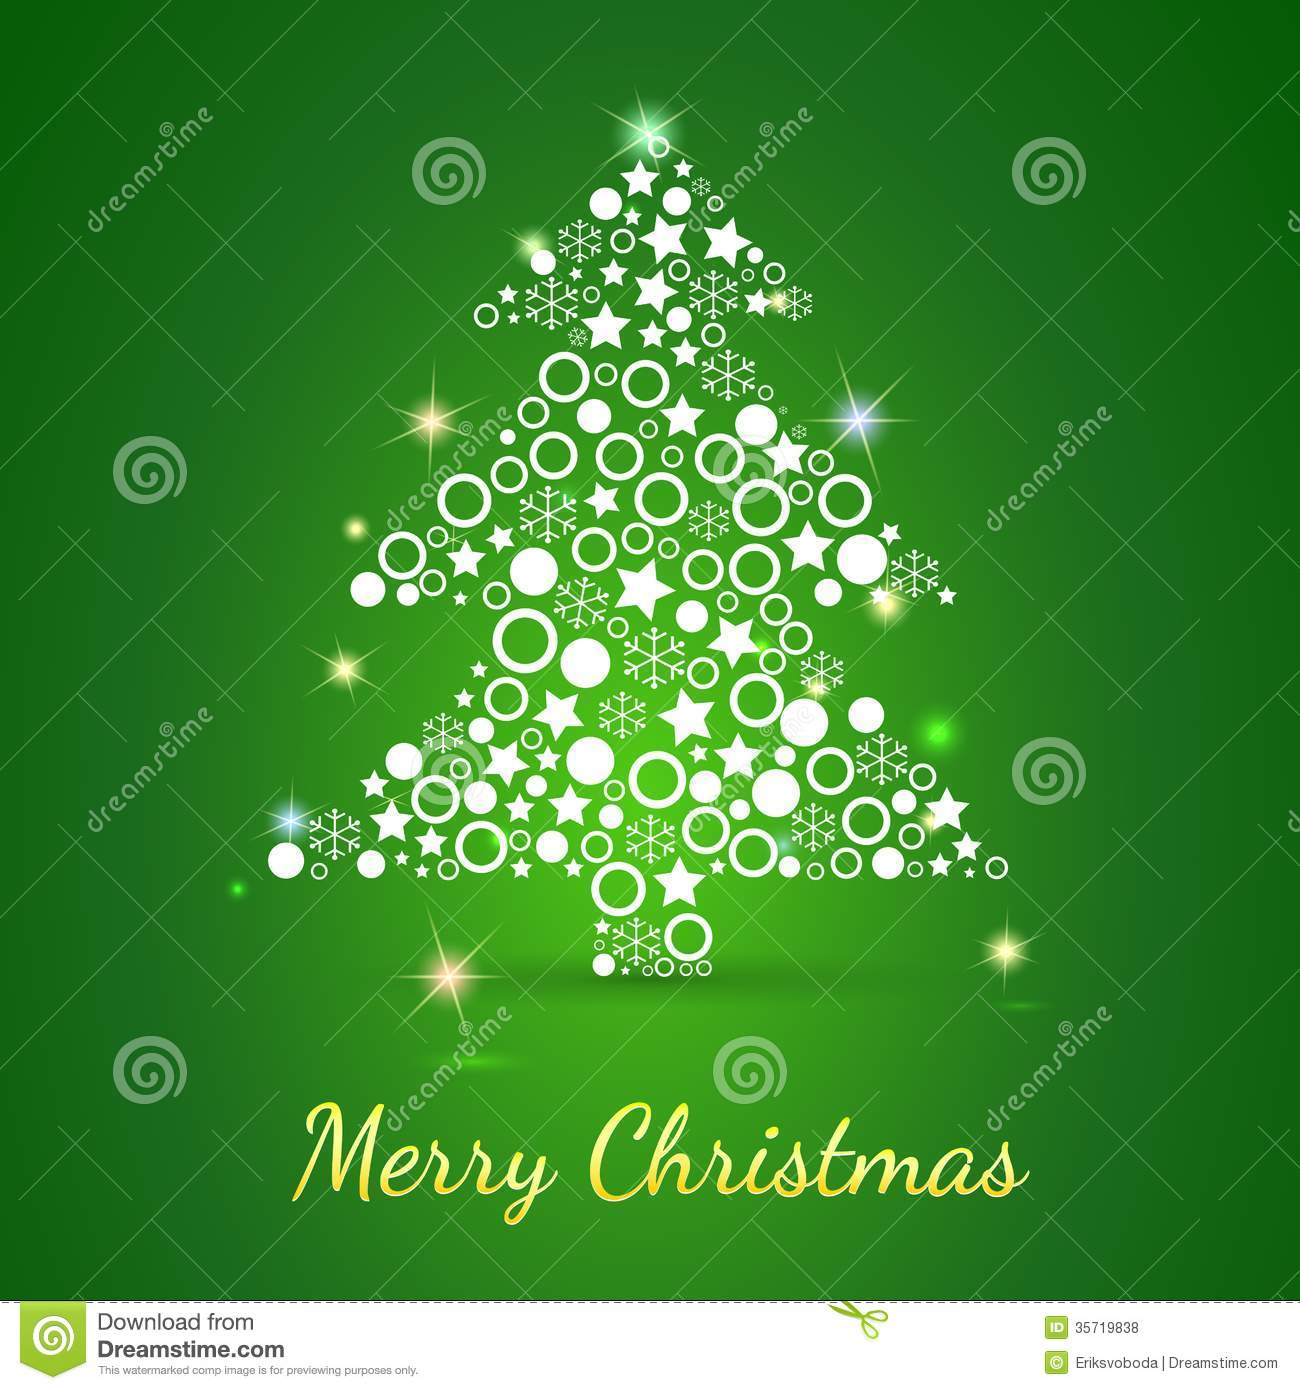 Merry Christmas Greeting Card Background Stock Vector Illustration